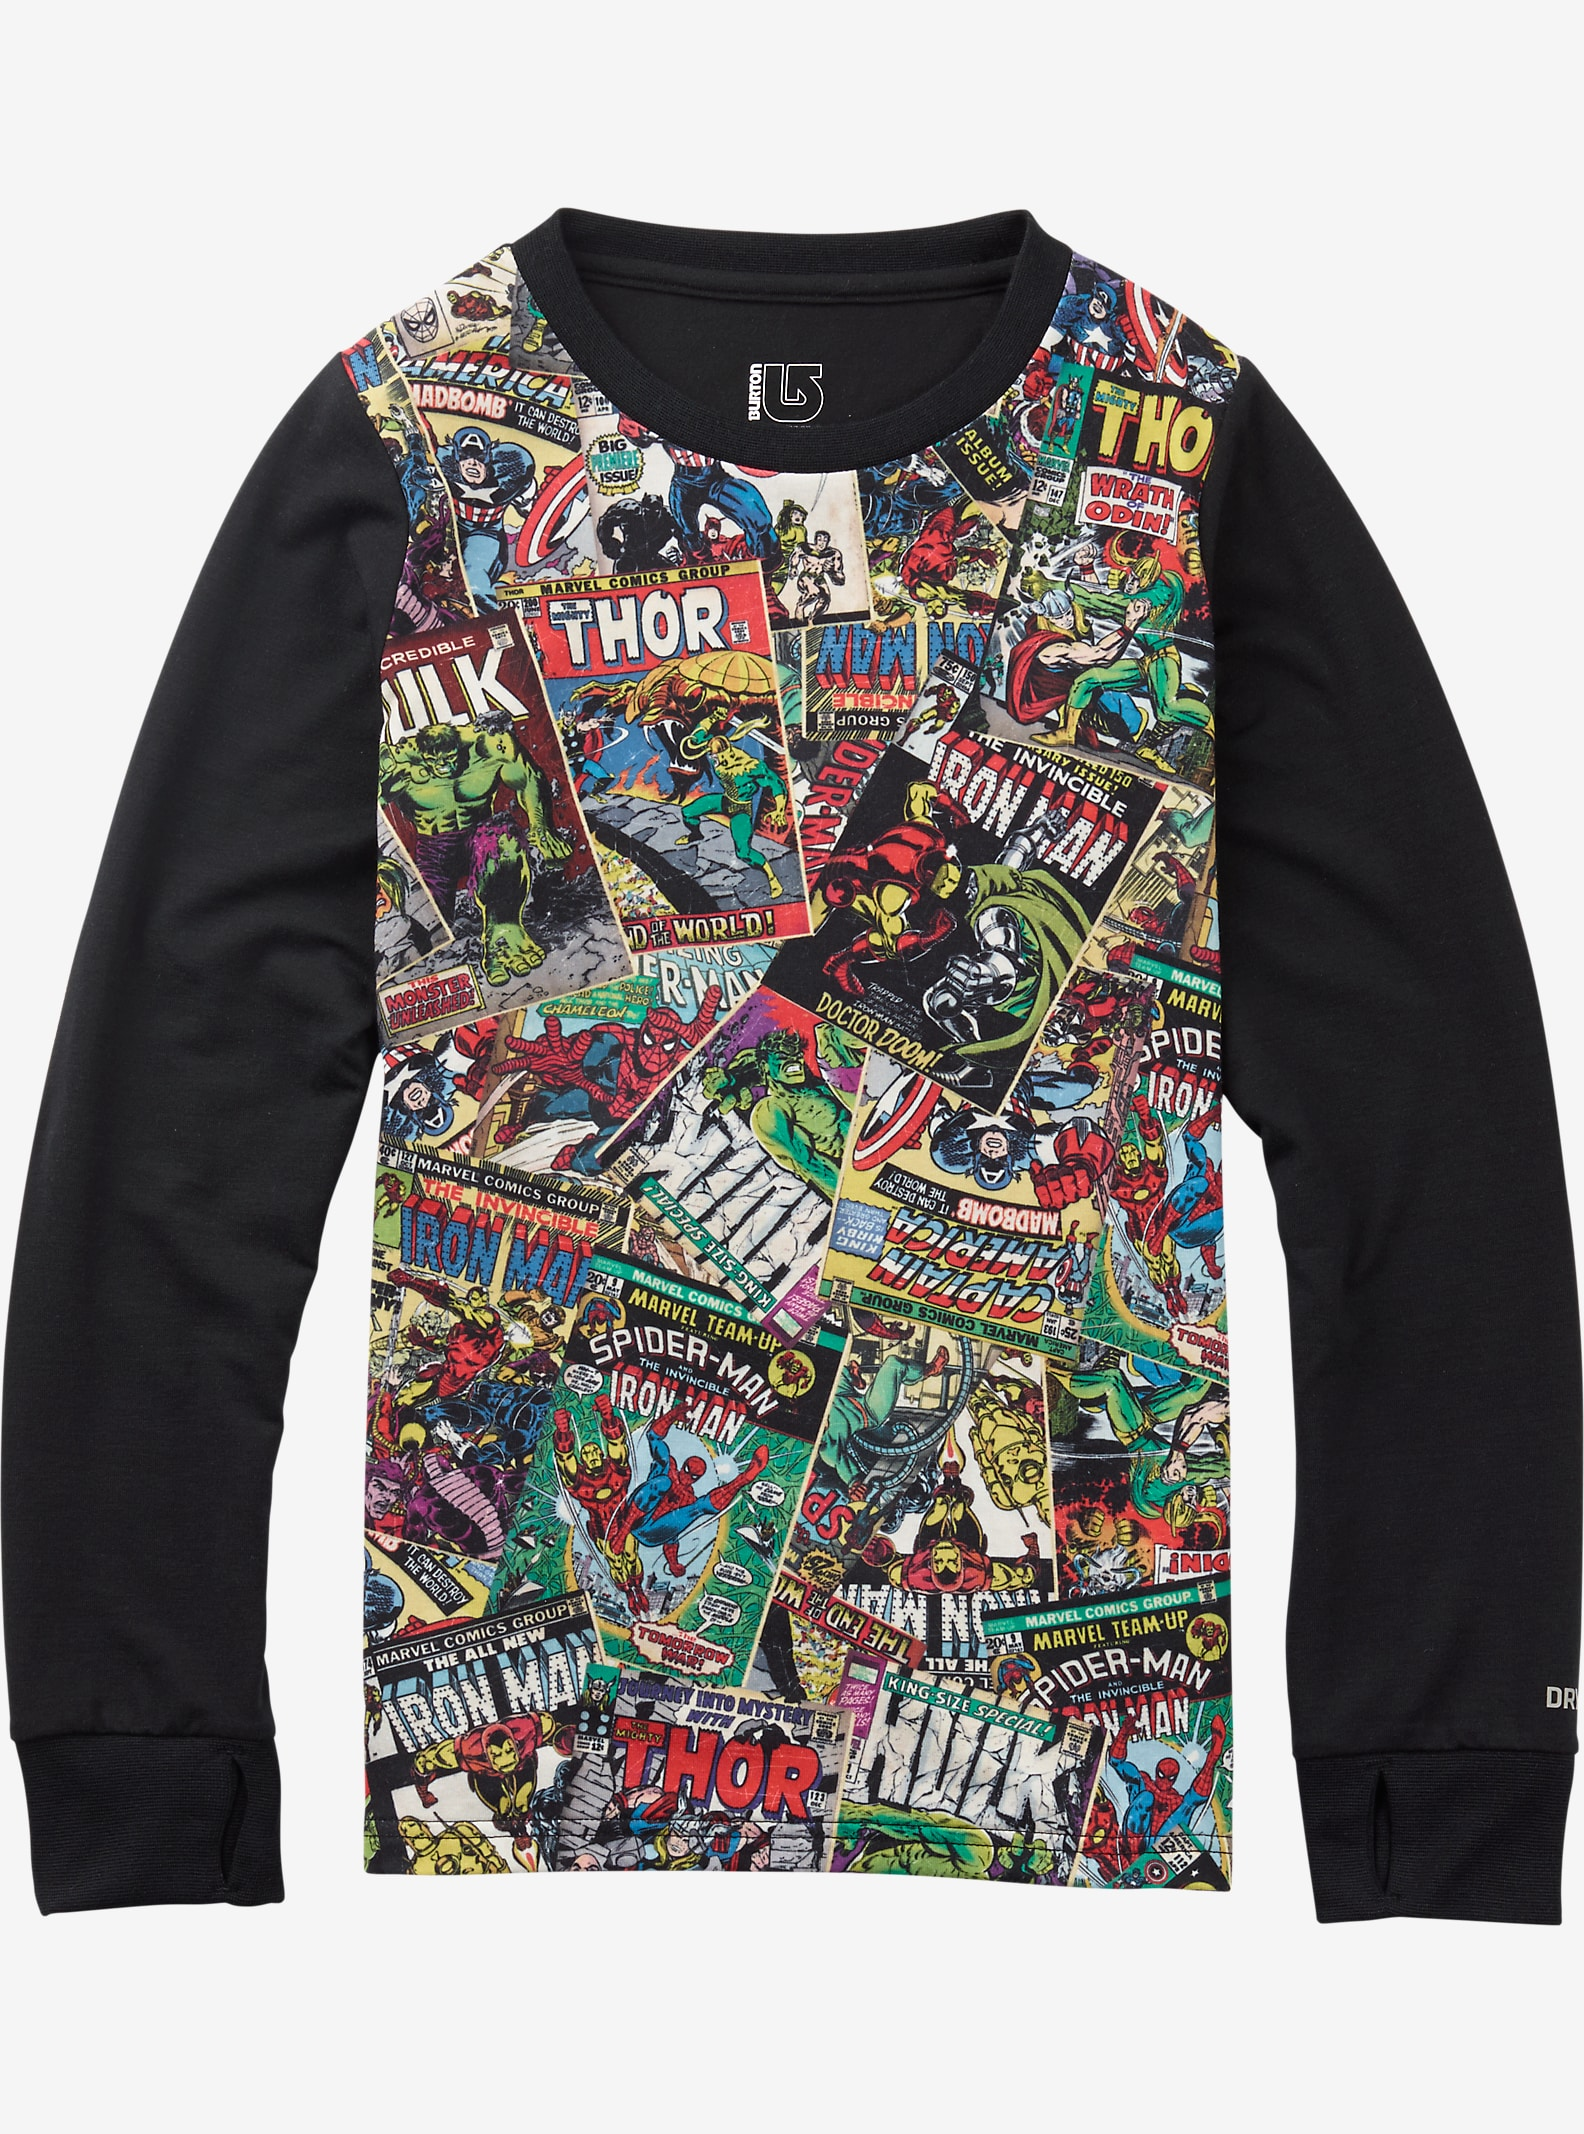 Marvel® x Burton Kids' Tech Tee shown in Marvel © 2016 MARVEL